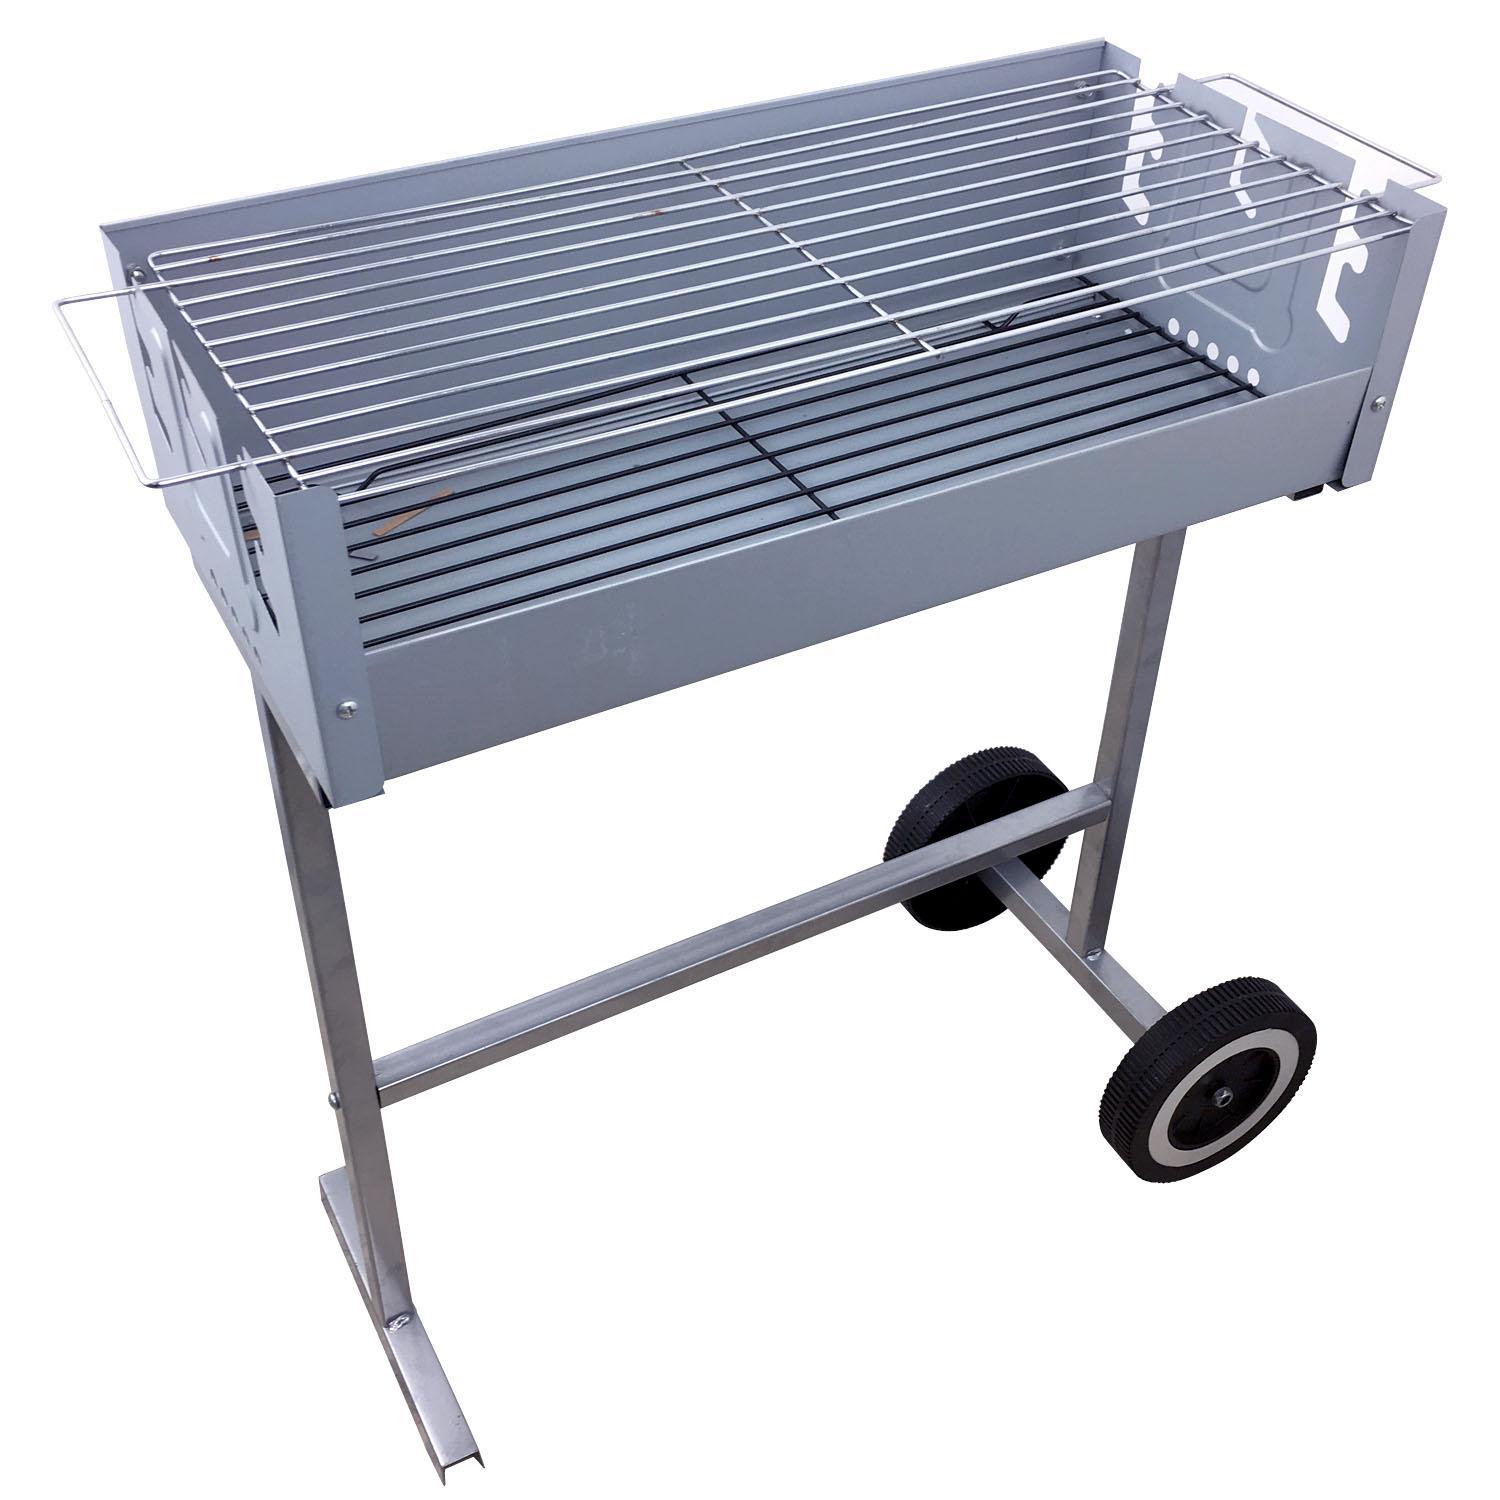 Outdoor Küche Broil King Portable Charcoal Bbq Barbeque Grill Trolley Silver